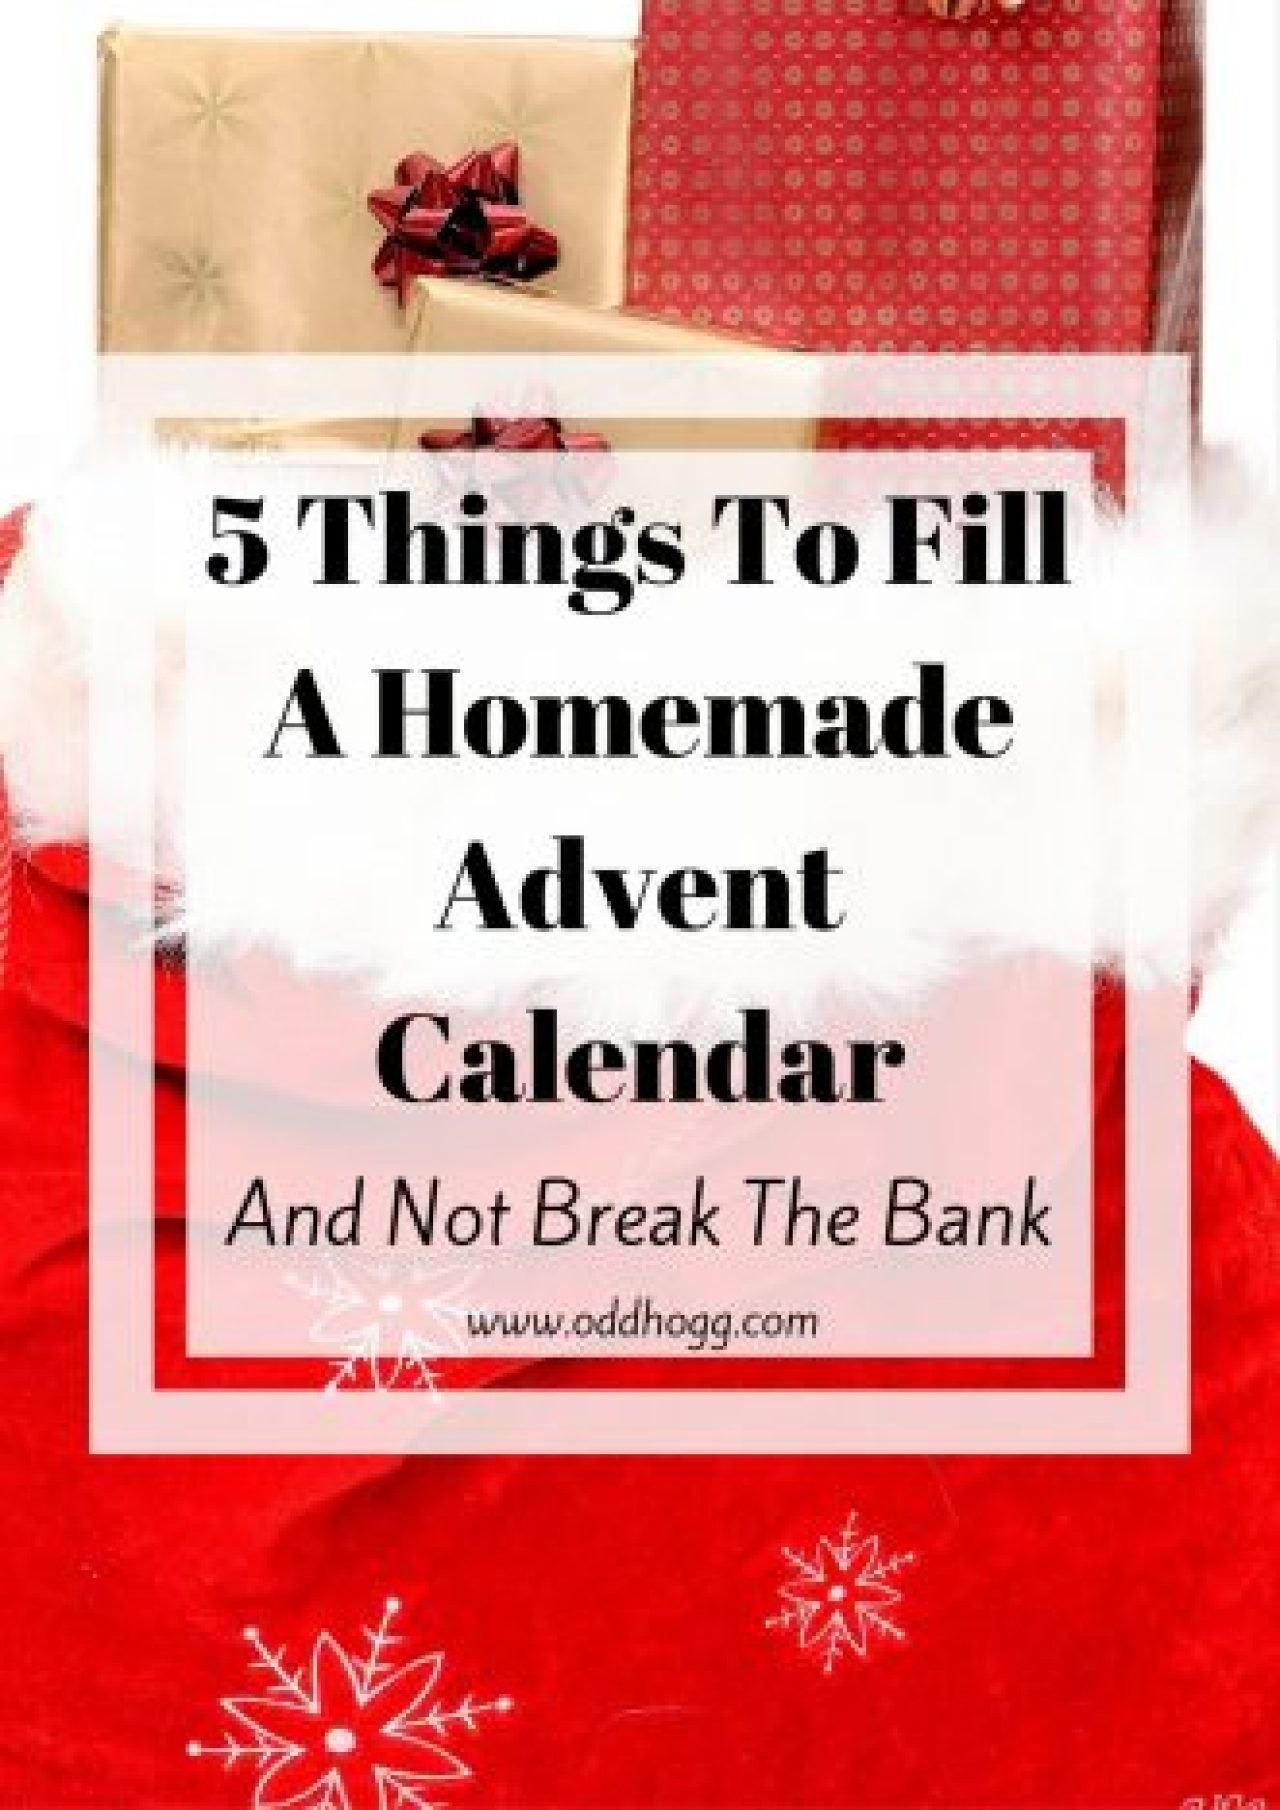 5 Things To Fill A Homemade Advent Calendar | Are you thinking of making your own advent calendar this year? This post has ideas for 5 types of items you can pop into a kids advent calendar http://oddhogg.com